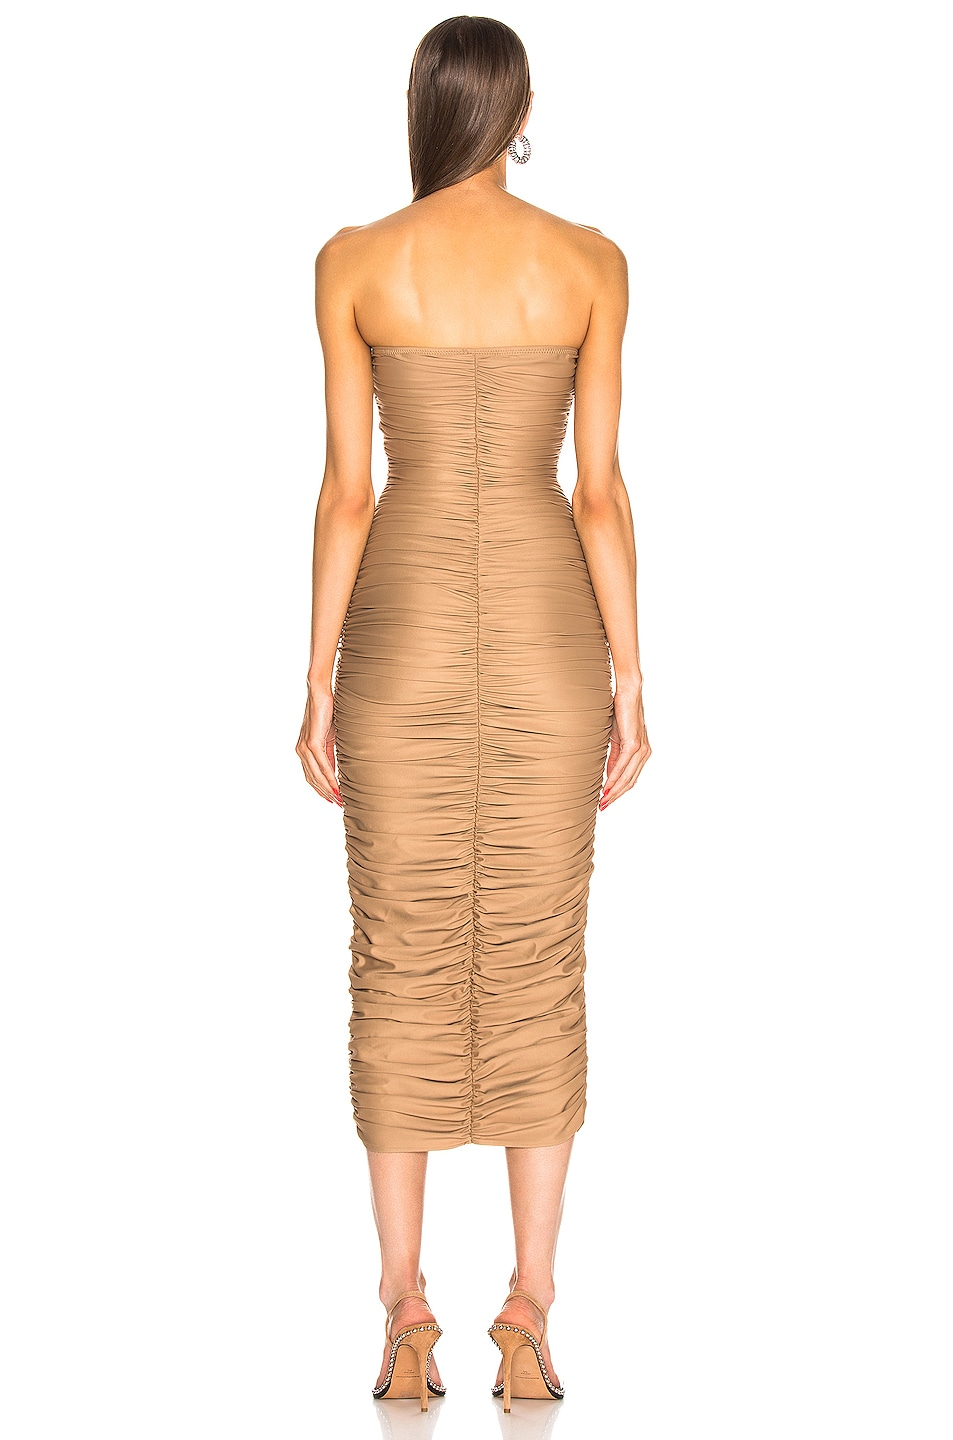 Image 3 of Norma Kamali Slinky Dress for FWRD in Suntan